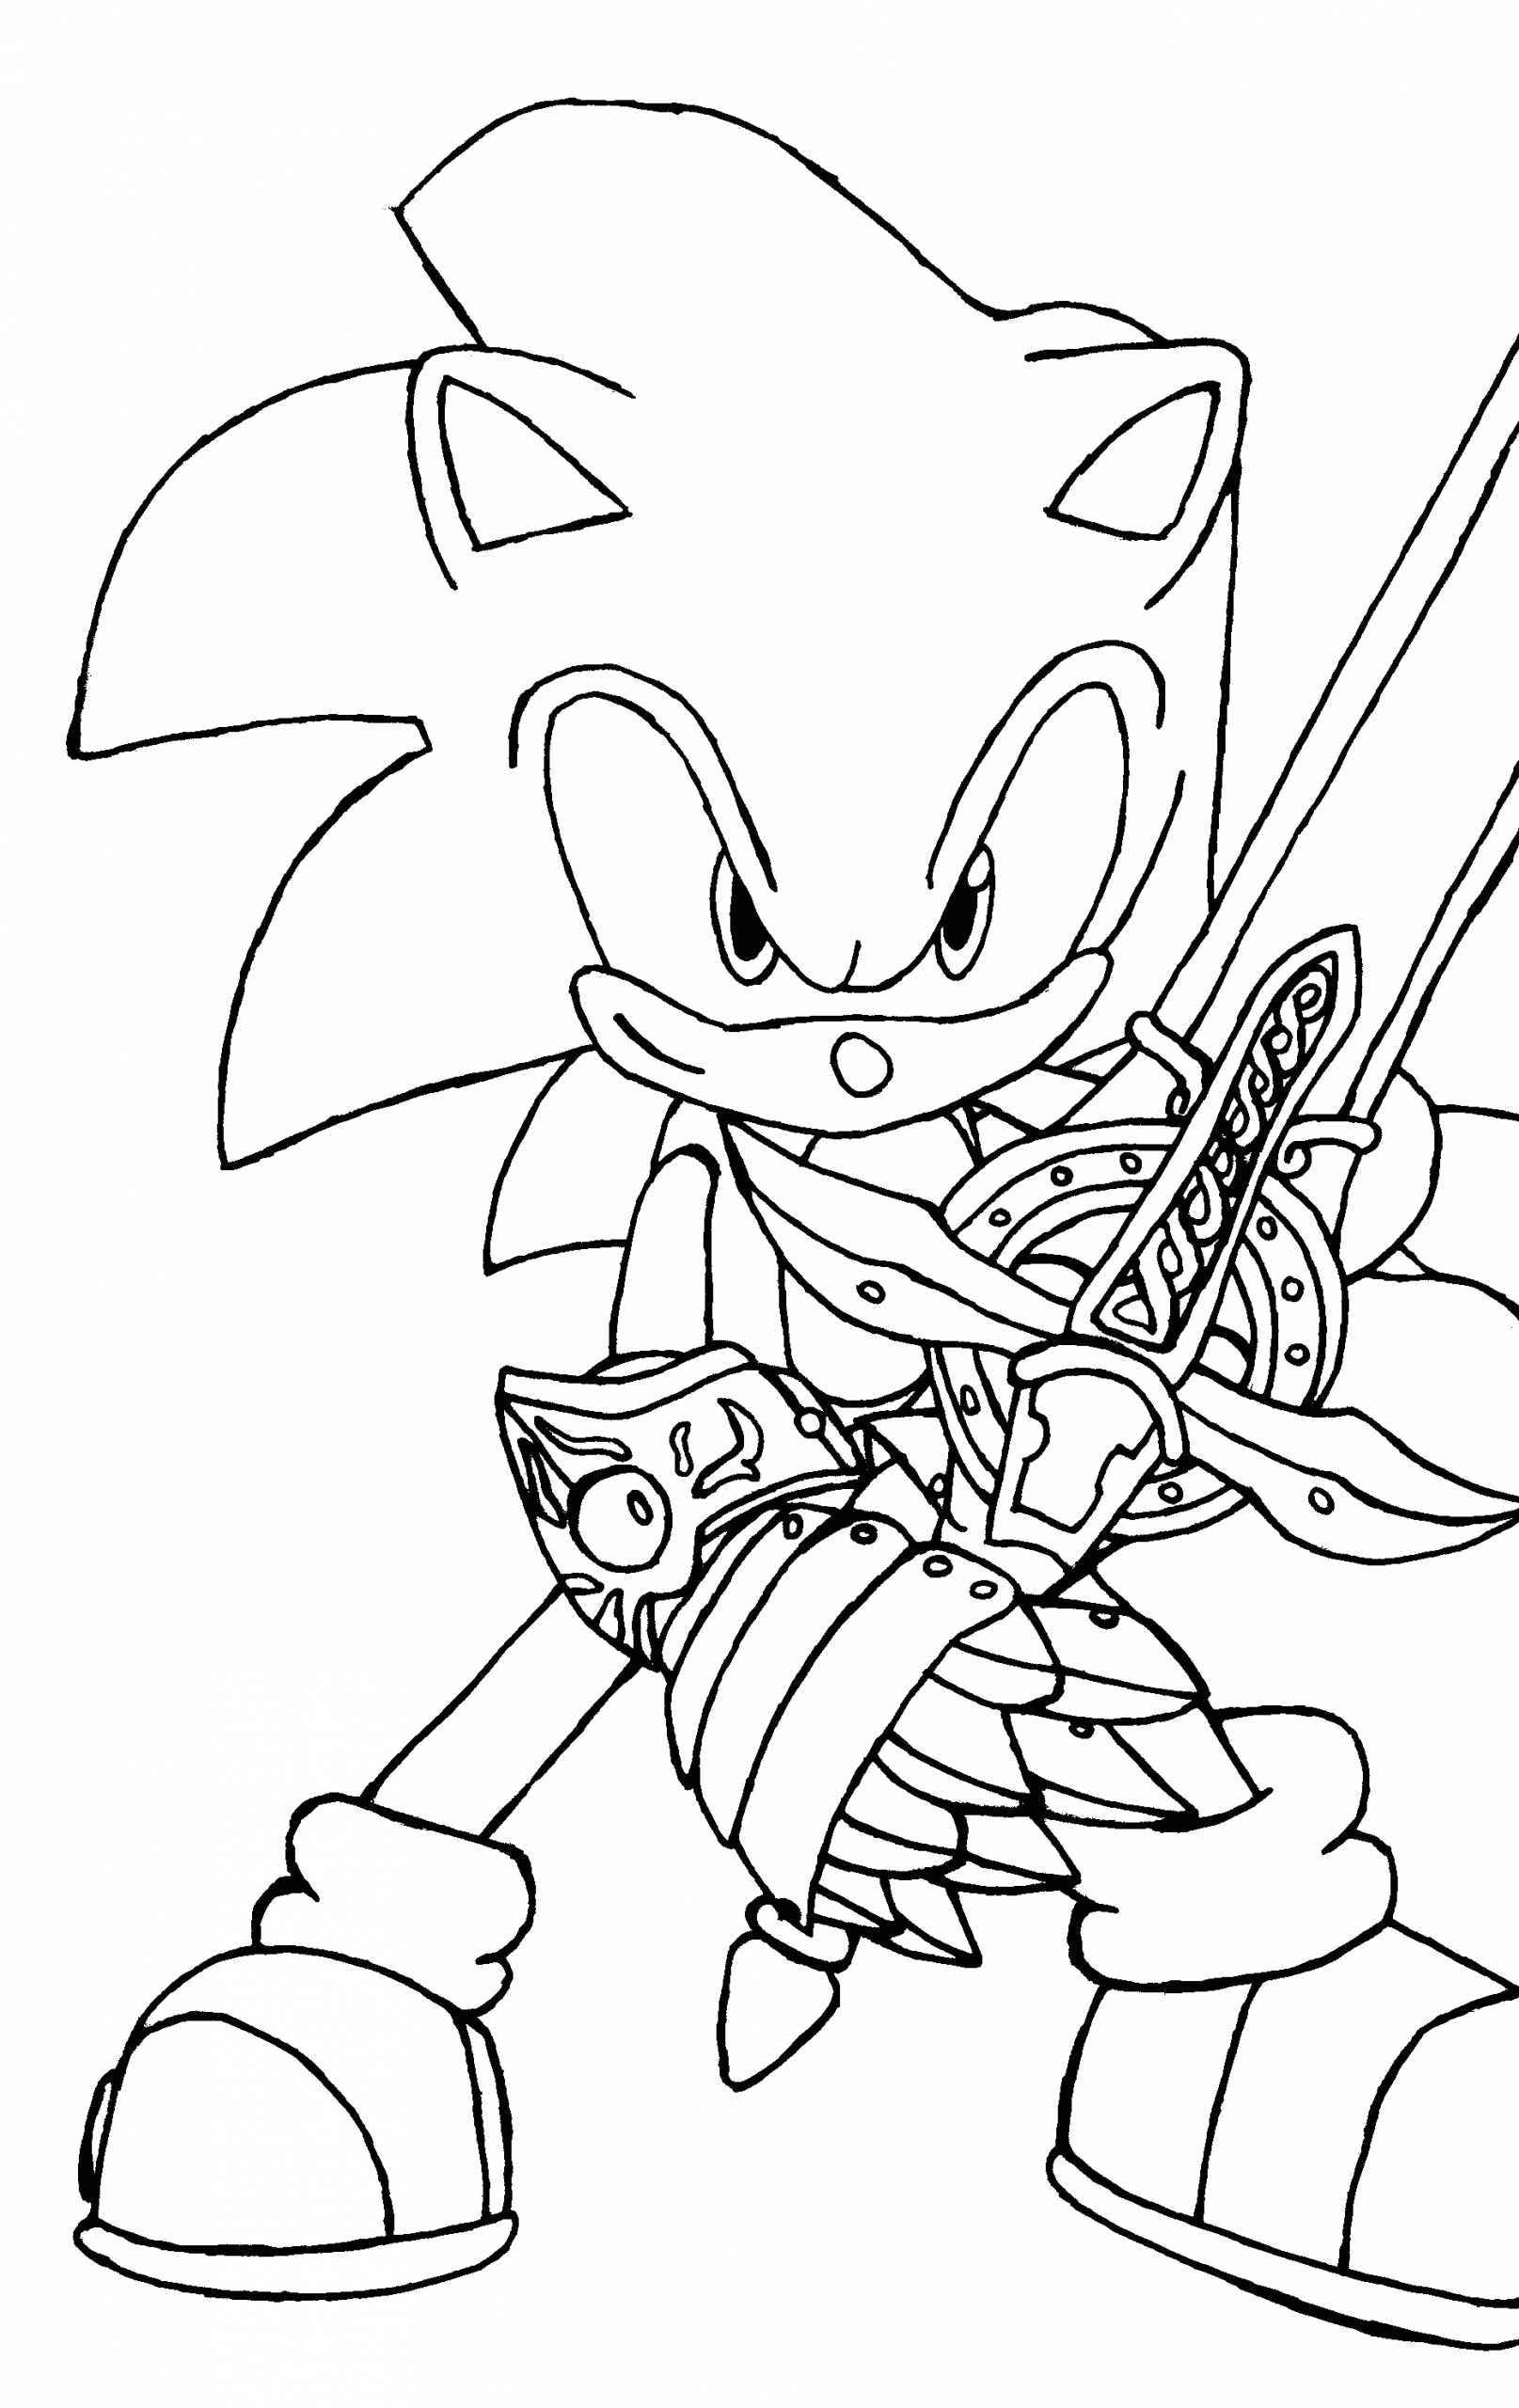 Free Coloring Pages Of sonic the Hedgehog Free Printable sonic the Hedgehog Coloring Pages for Kids